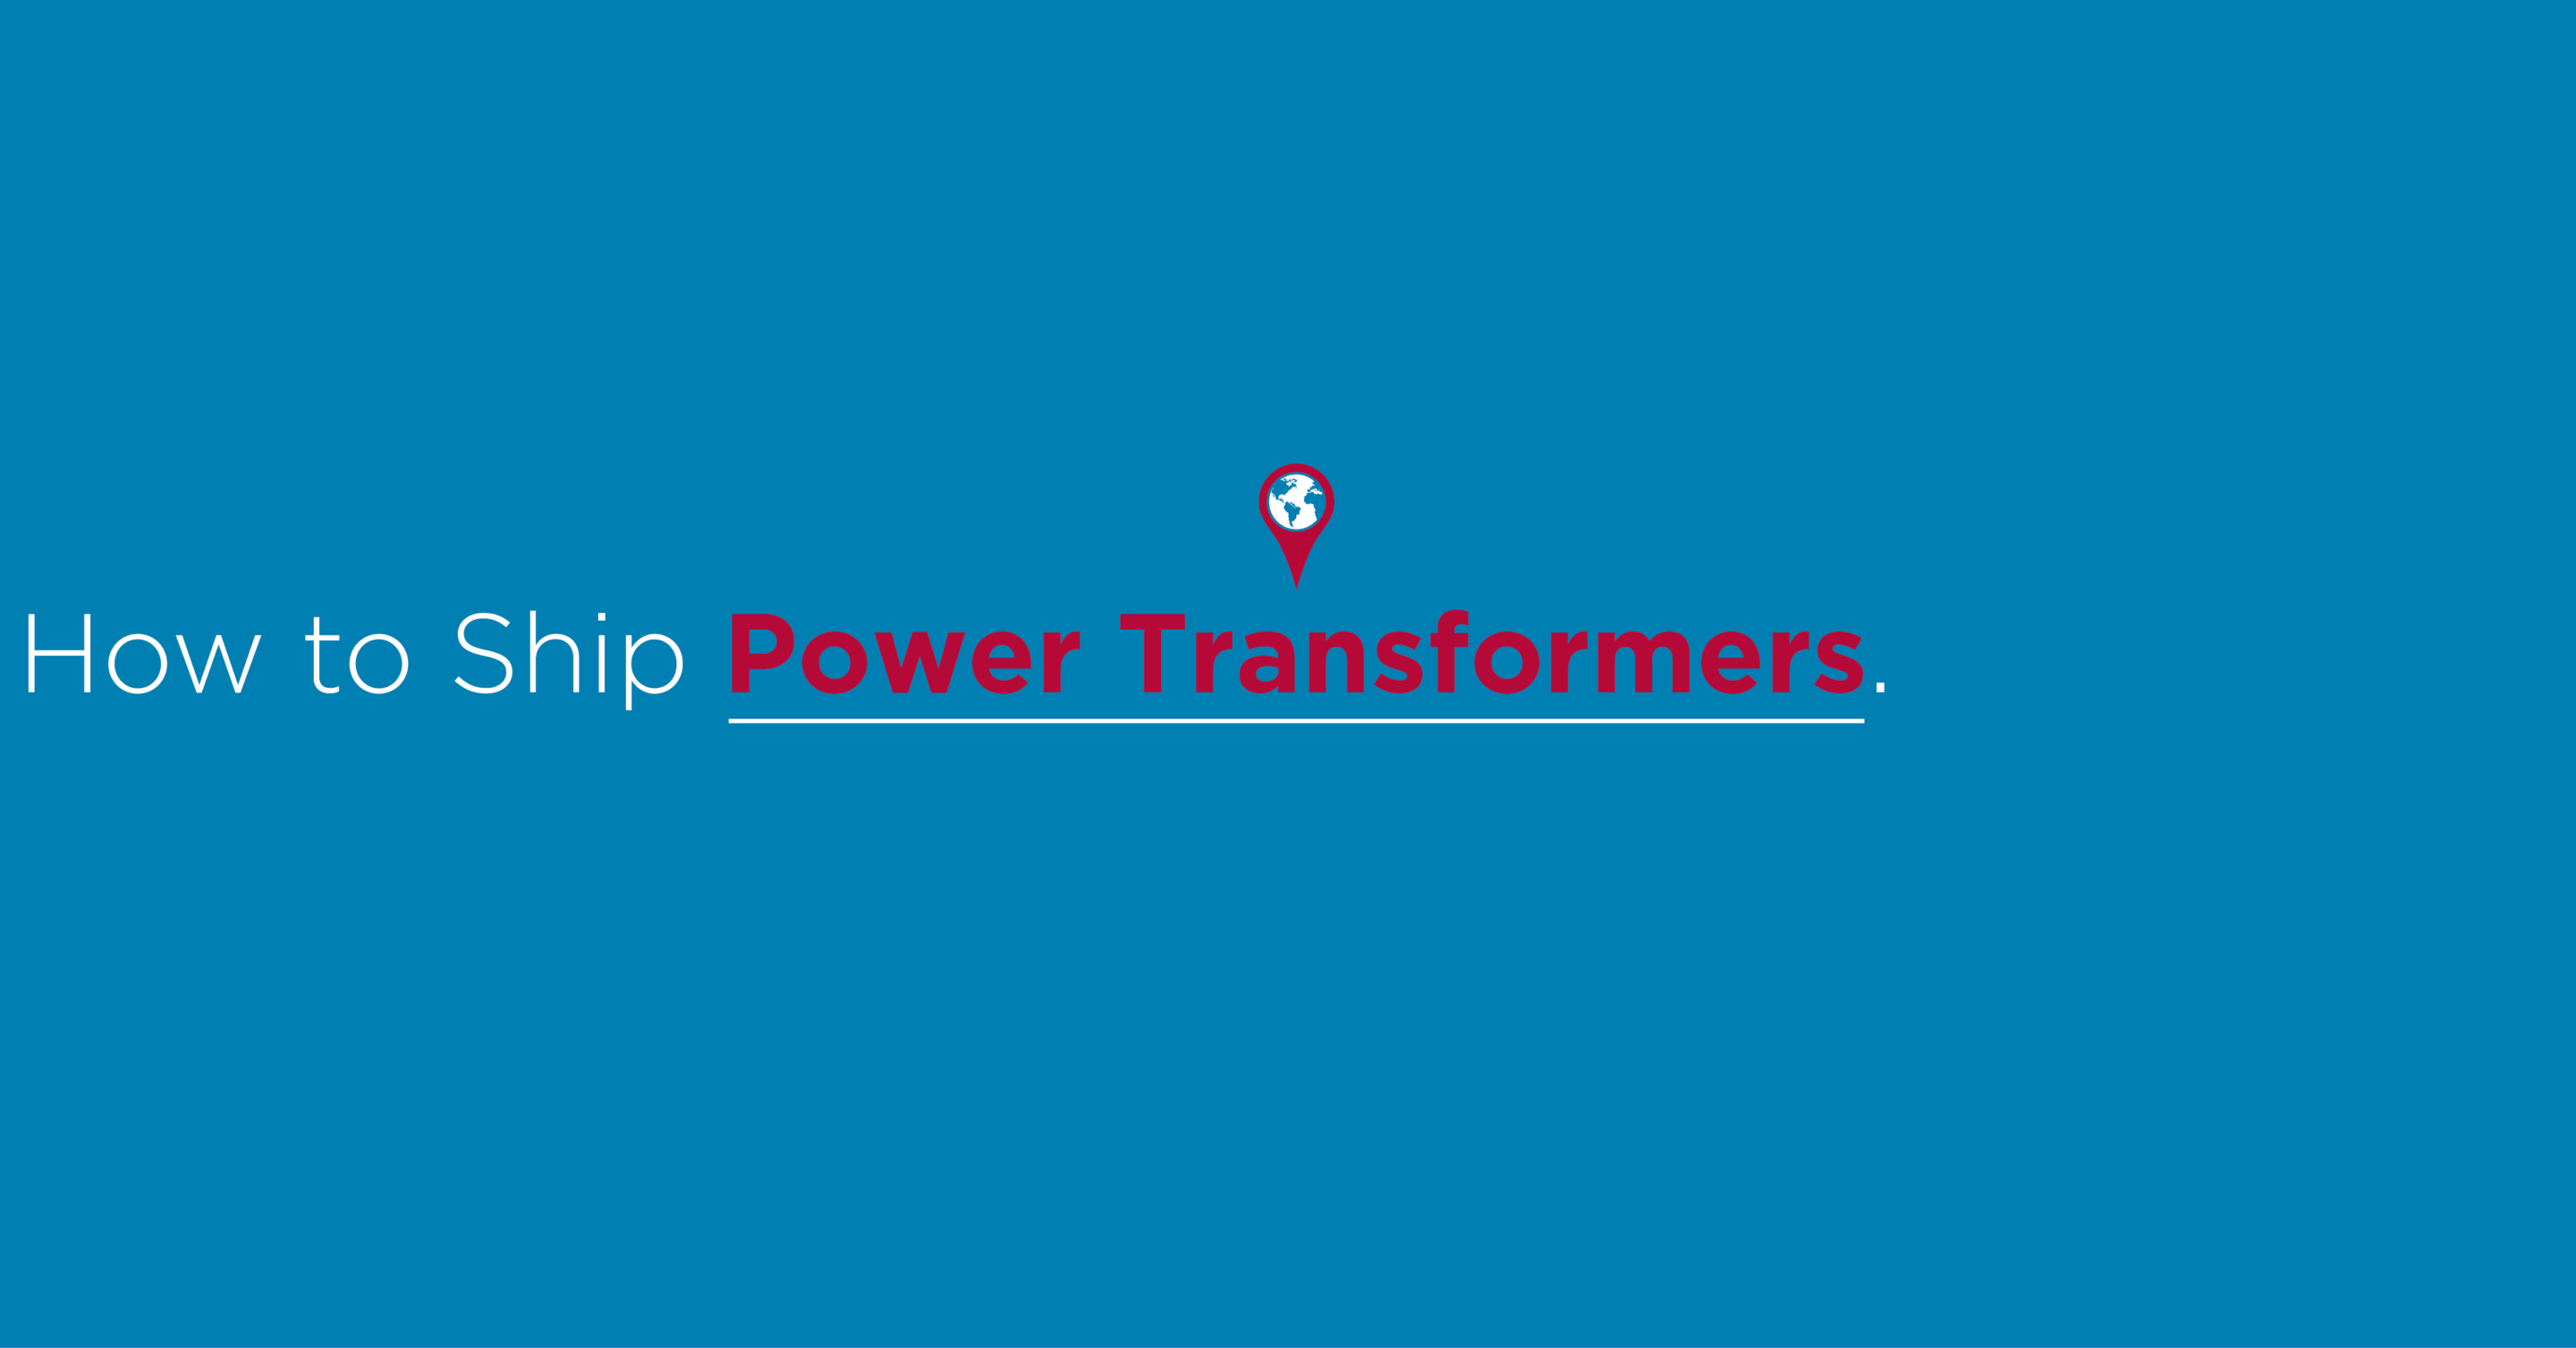 How to Monitor Power Transformers In-Transit